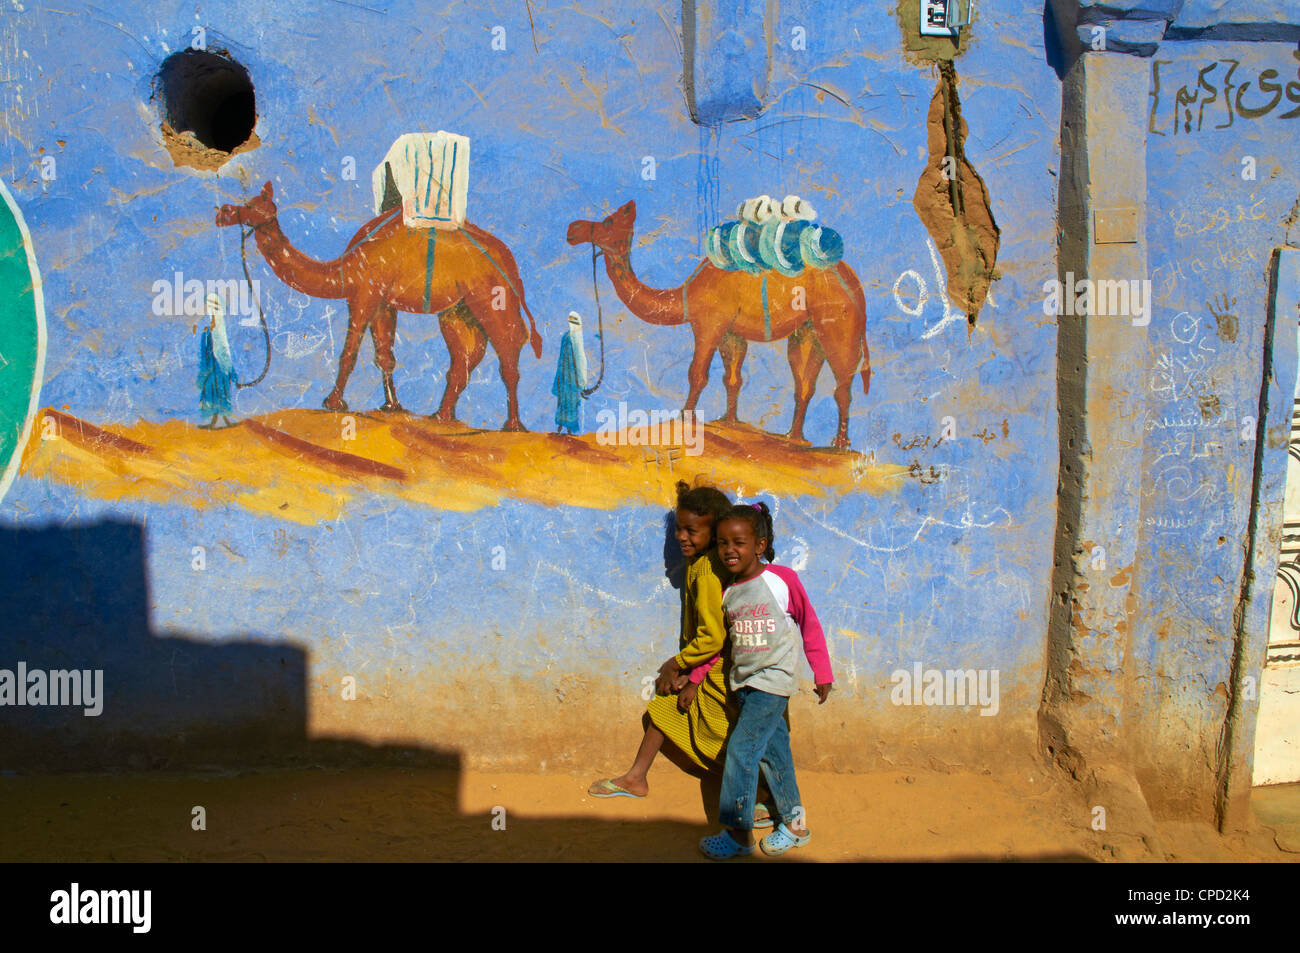 Nubian painted village near Aswan, Egypt, North Africa, Africa - Stock Image